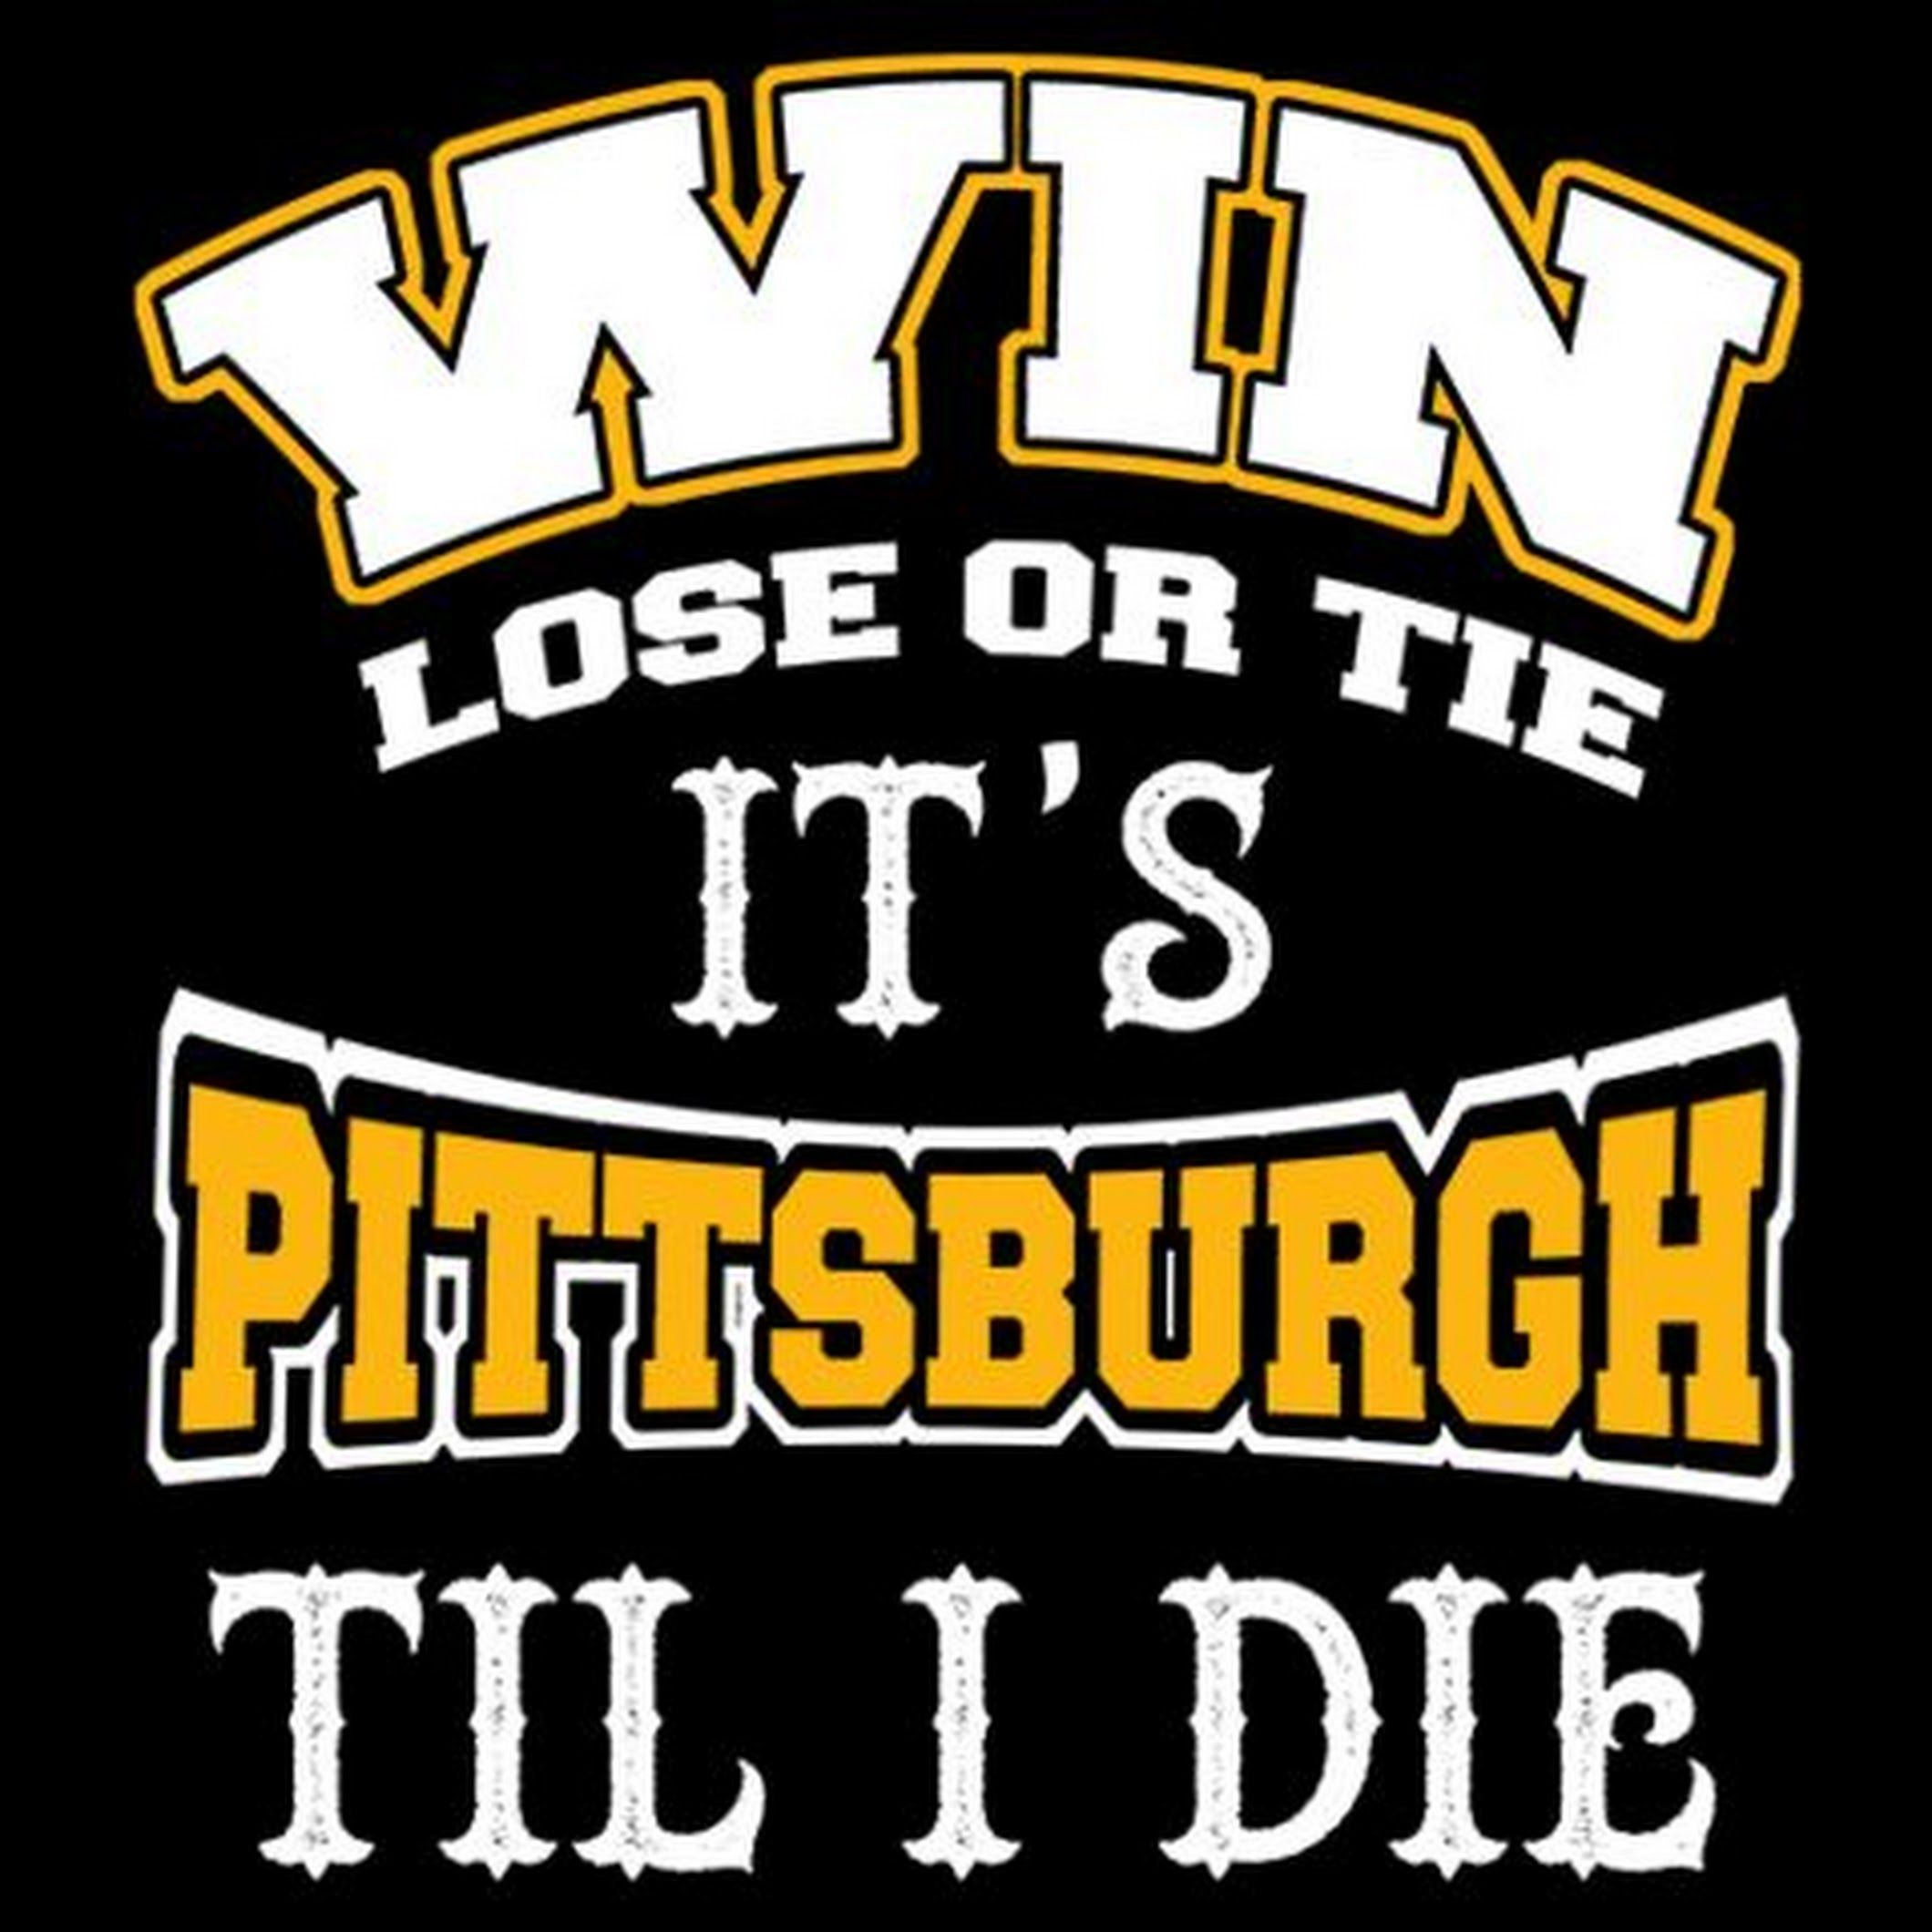 On Game And Every Day Pittsburgh football, Pittsburgh